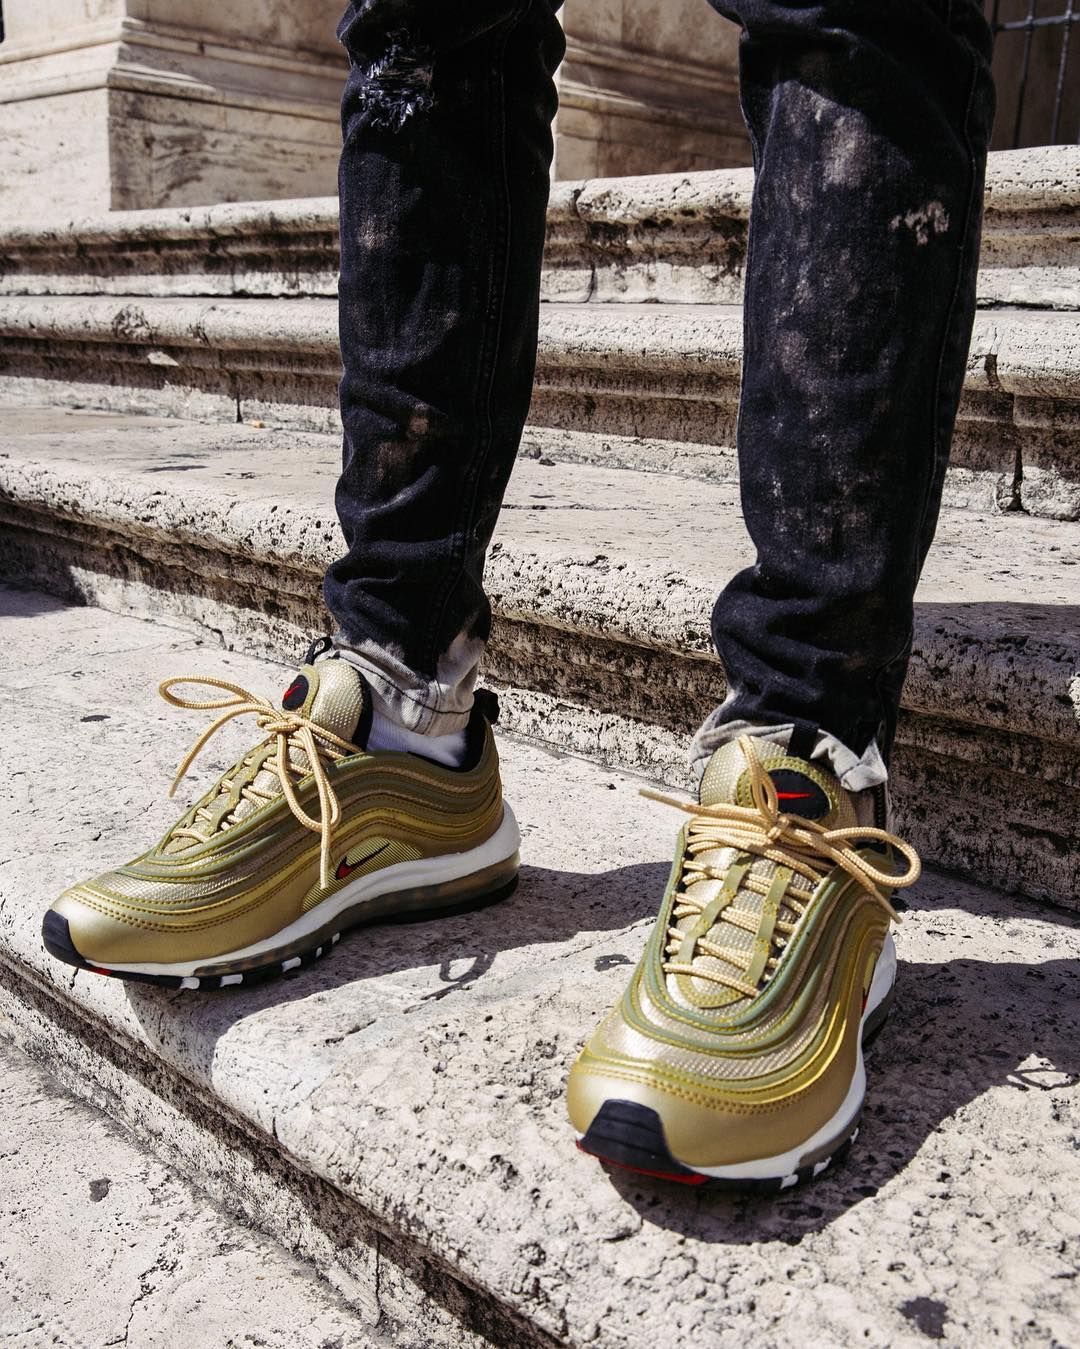 new arrivals 778d9 a1033 Nike Air Max 97  Gold